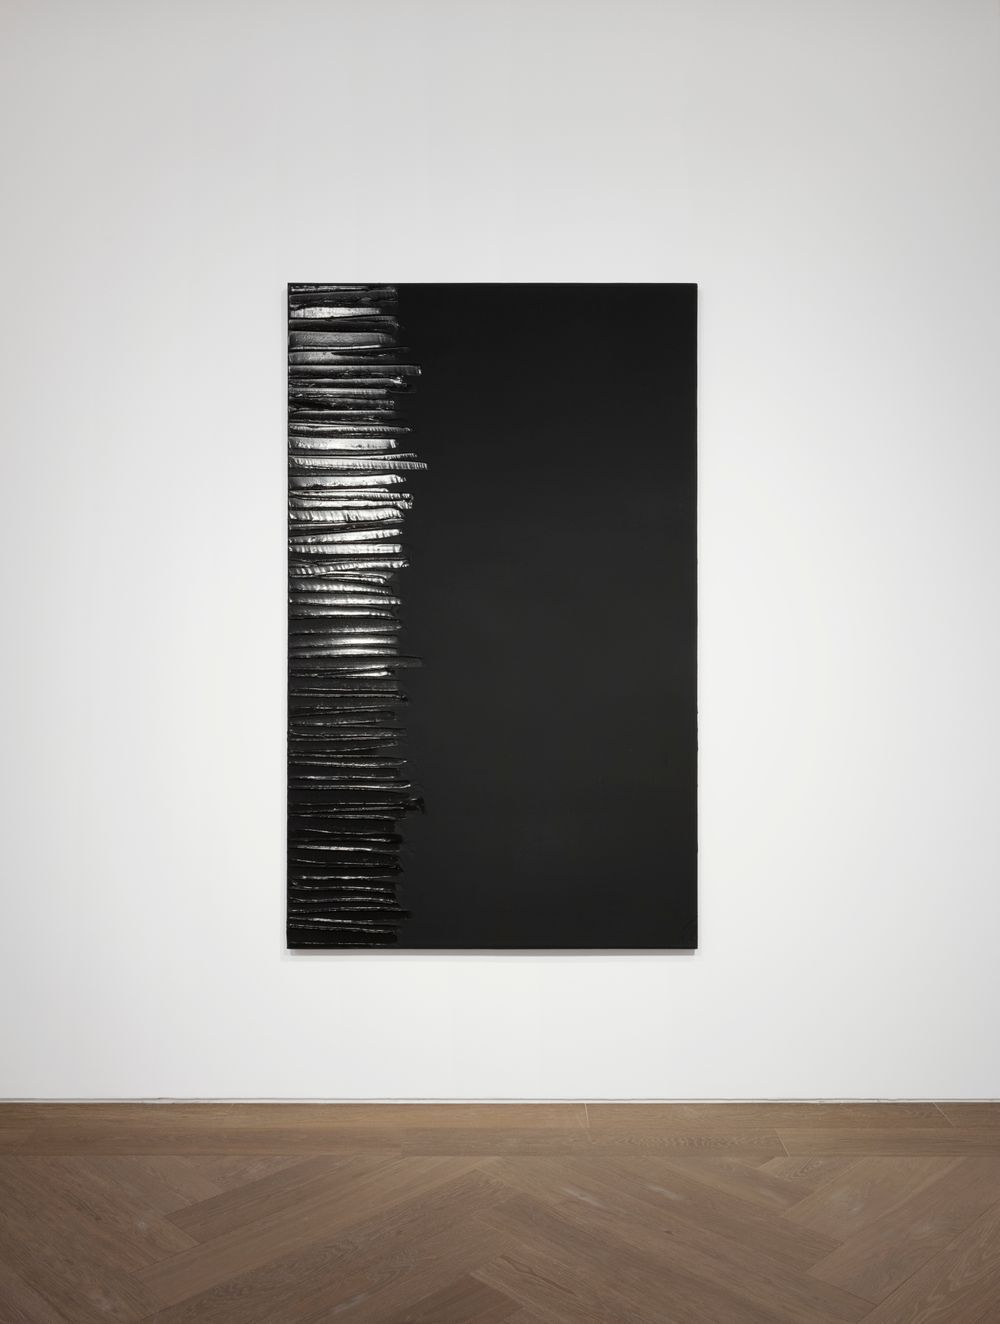 Artist:Pierre SOULAGES, Exhibition: